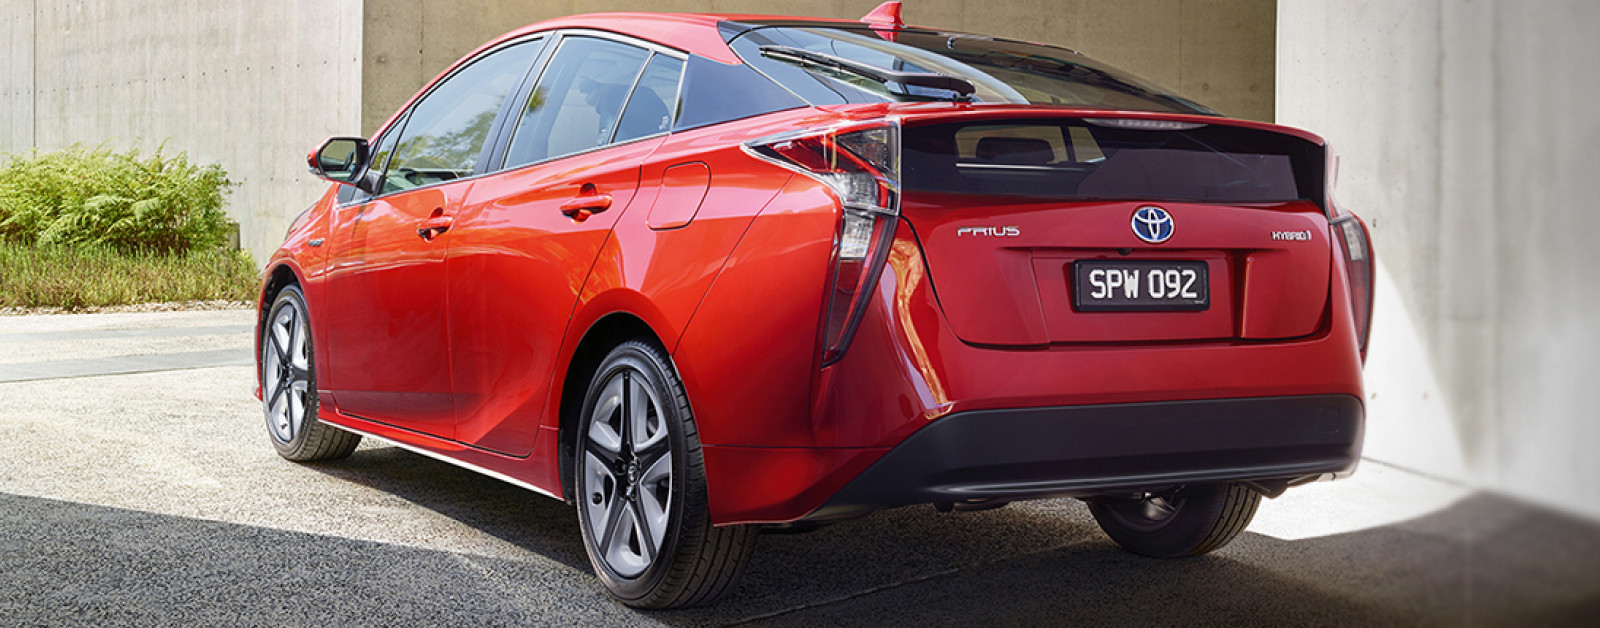 hybrid synergy drive system generates enough power to drive prius on its own the petrol engine only kicks in when you call for more power